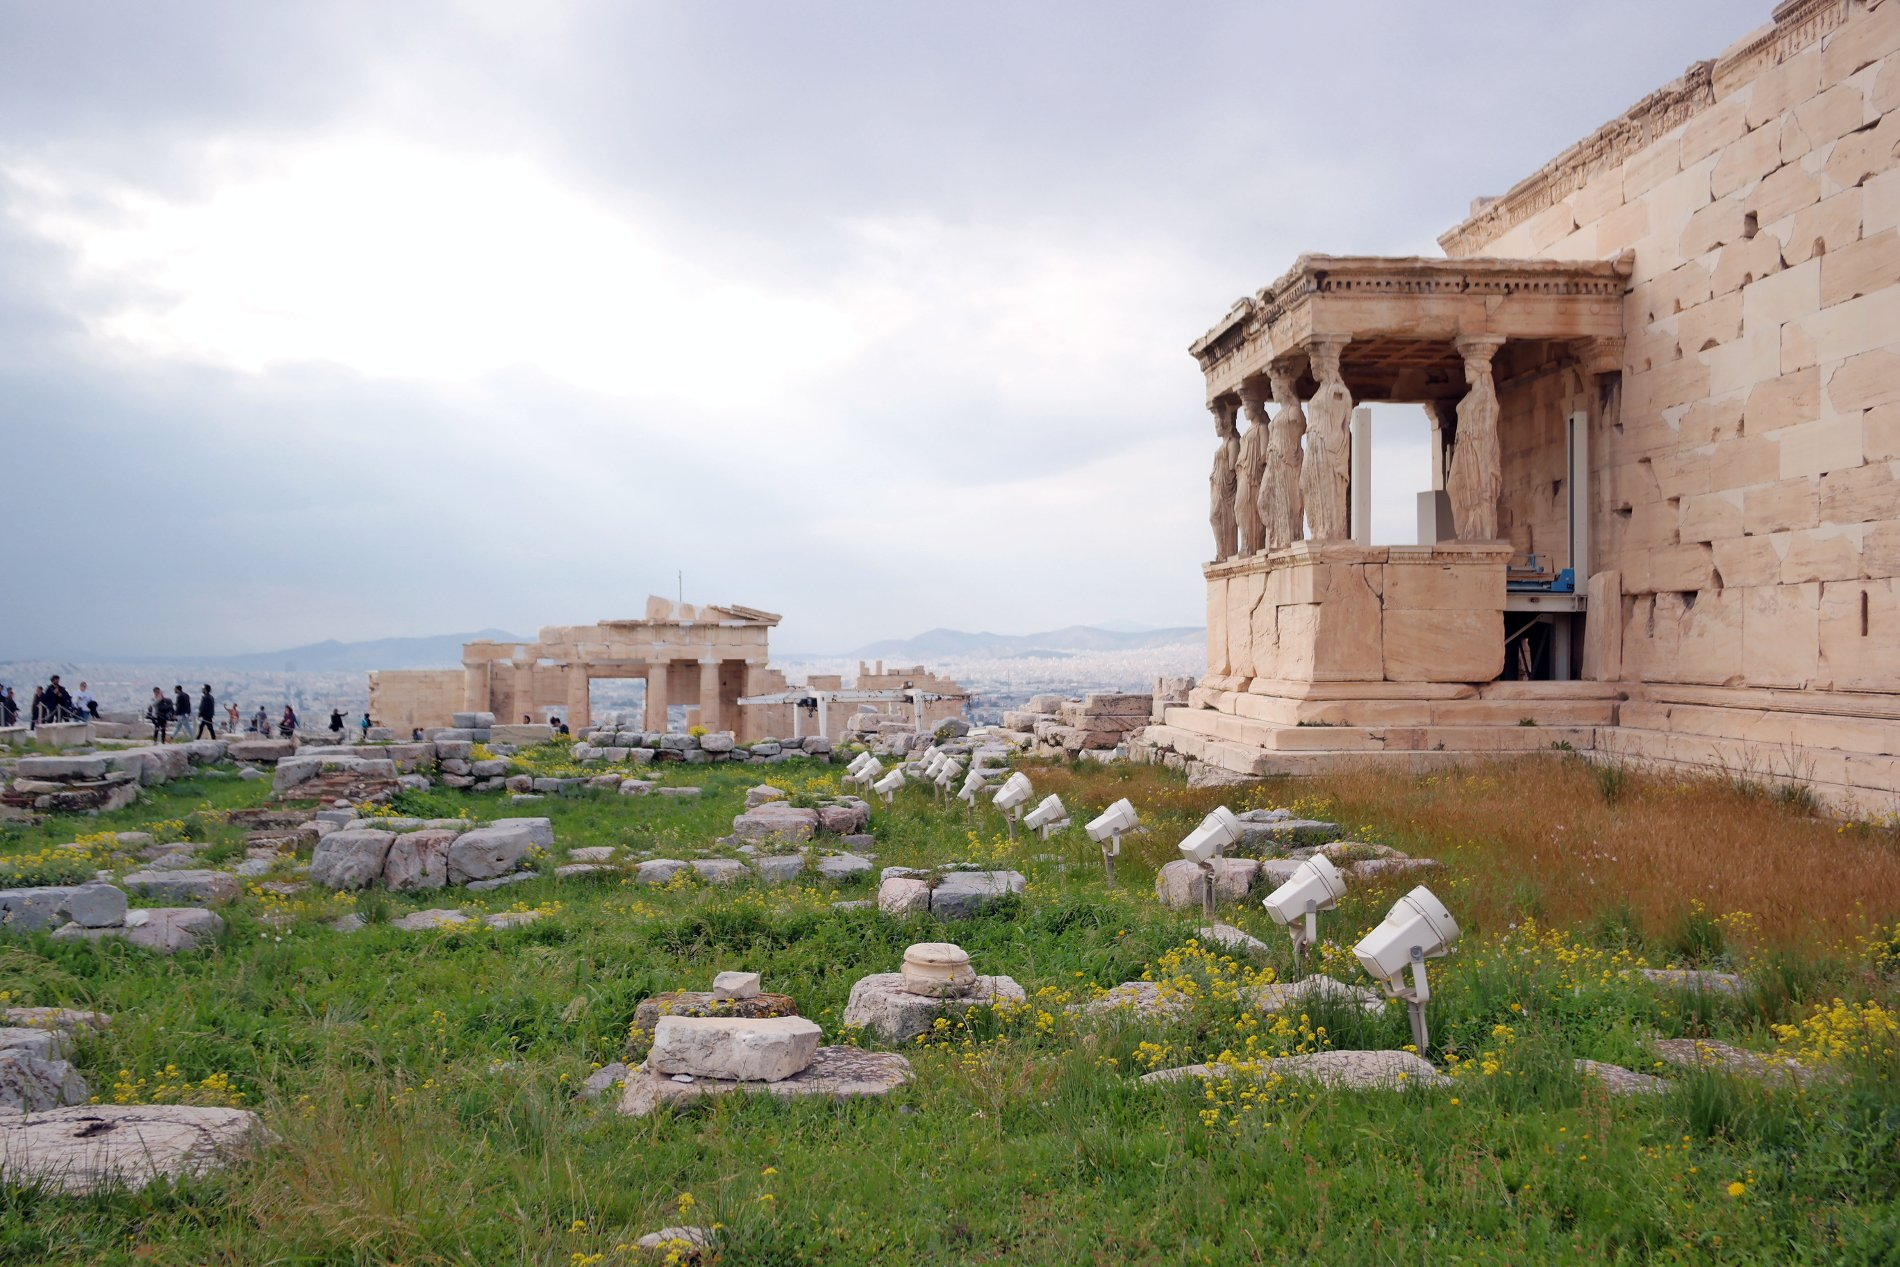 Porch of the Caryatids in Erechtheion. Source: Truevoyagers